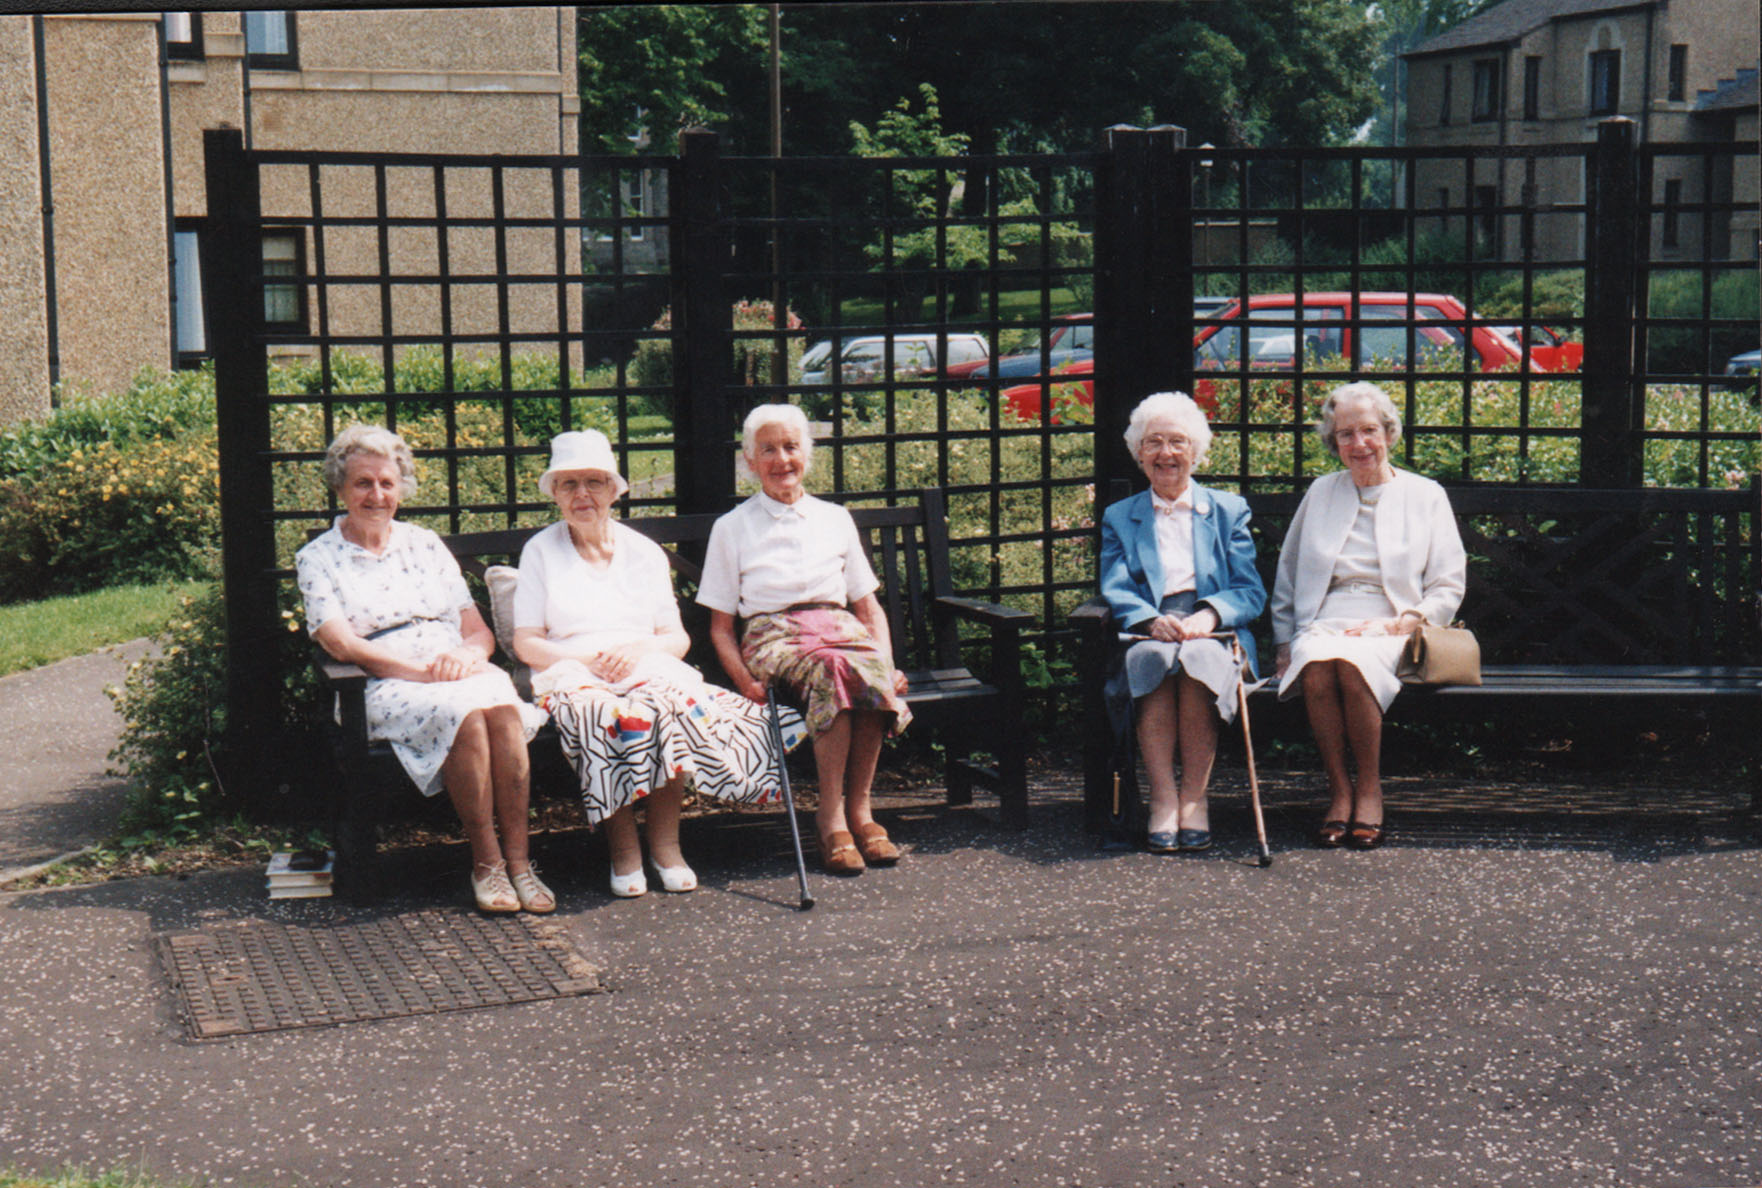 grendon court tenants 1985 - 2